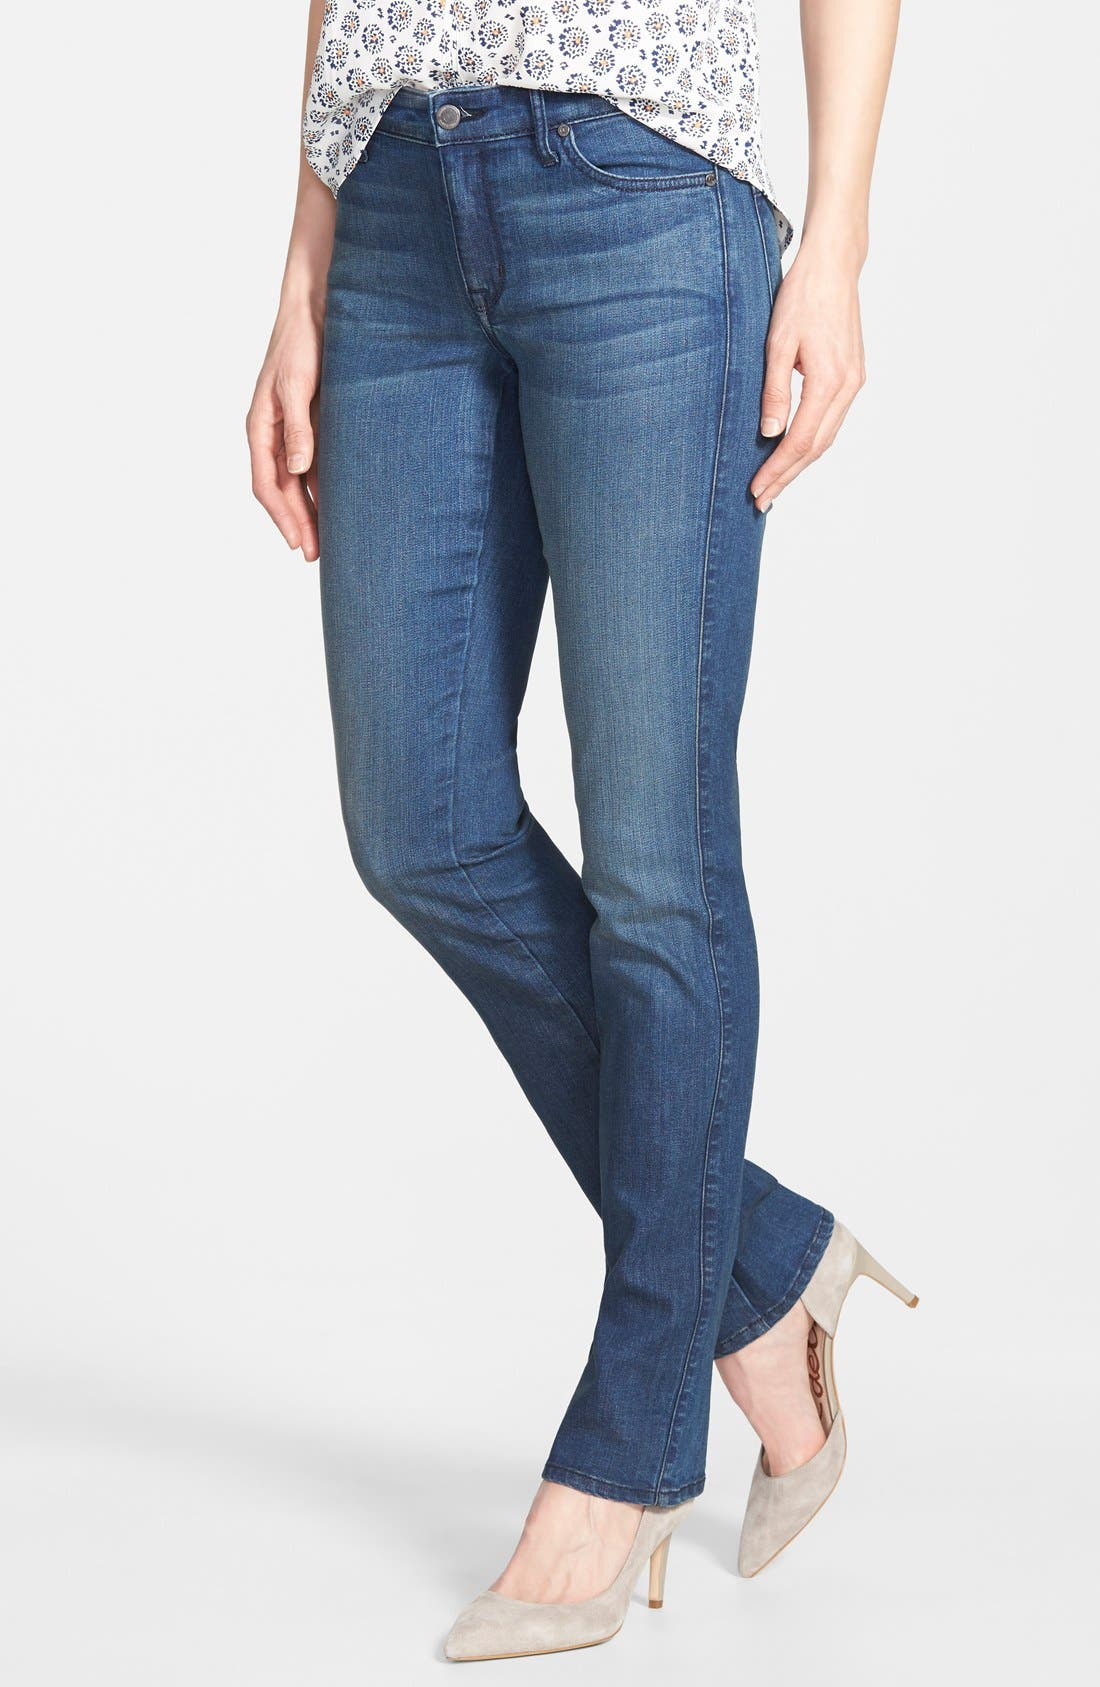 Alternate Image 1 Selected - CJ by Cookie Johnson 'Faith' Stretch Straight Leg Jeans (Dyson) (Online Only)